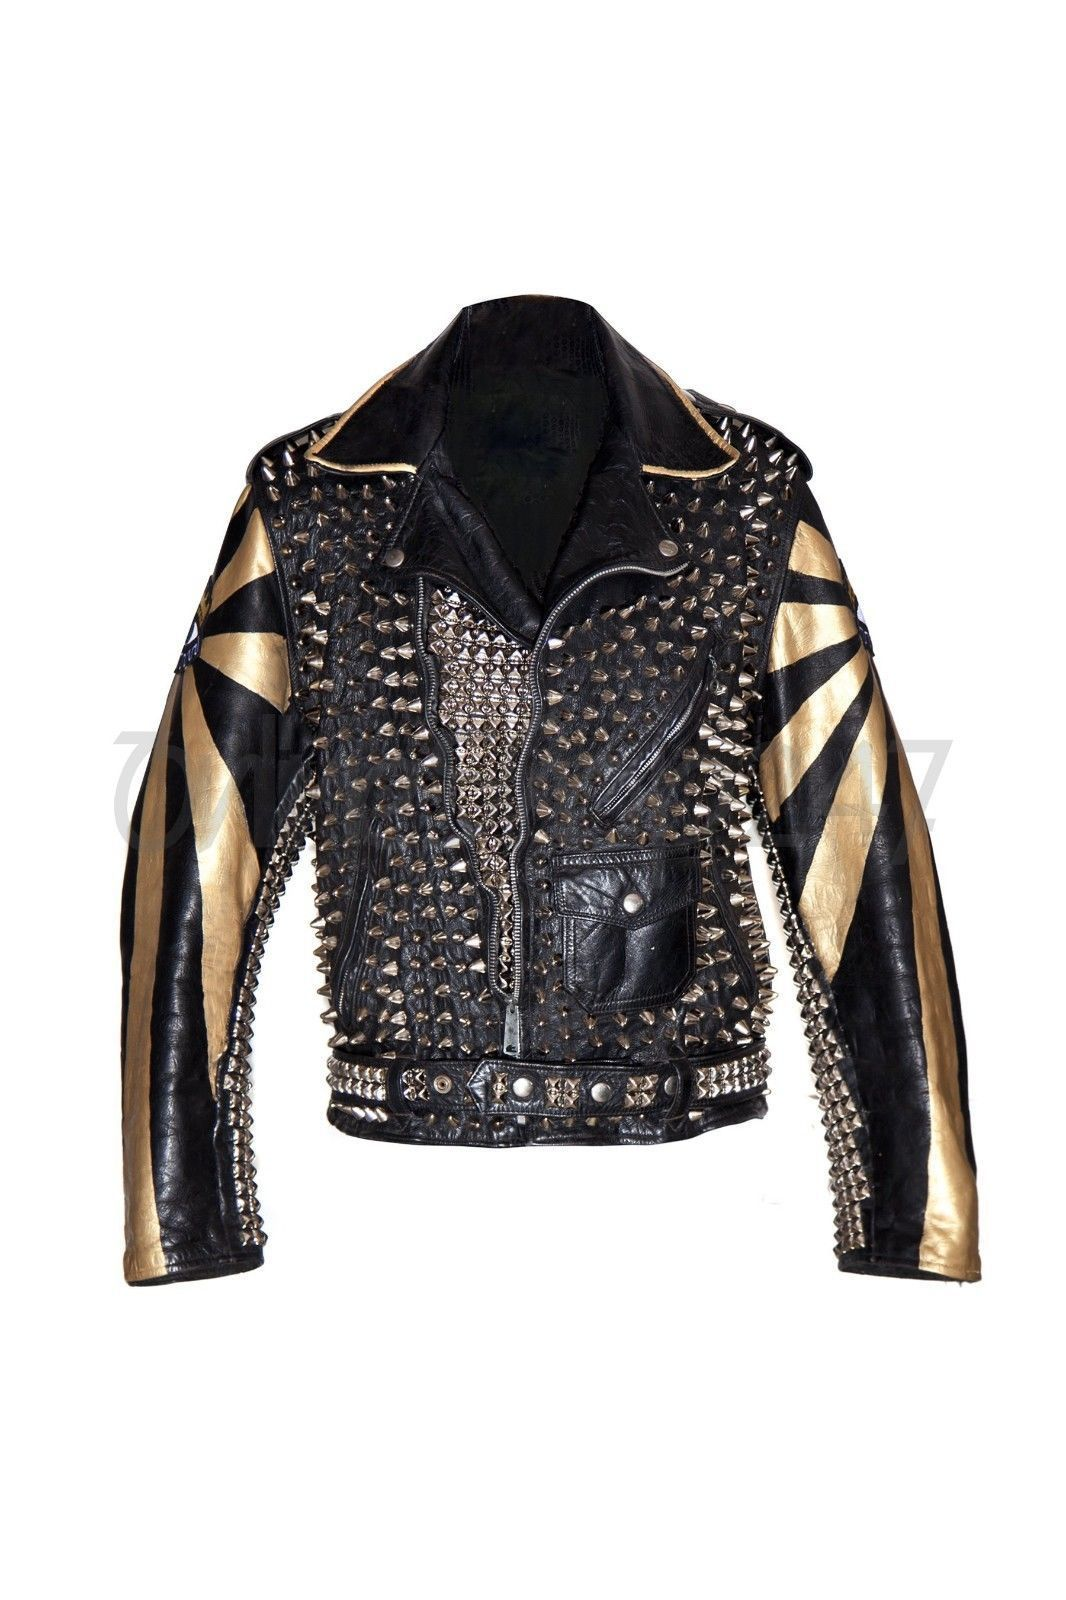 Genuine Elevtric Eye Punk Gold Silver Studs Spiked Studded Leadstyle Leather Jacket Leather Jacket Men Style Leather Jacket Studded Leather Jacket [ 1600 x 1066 Pixel ]